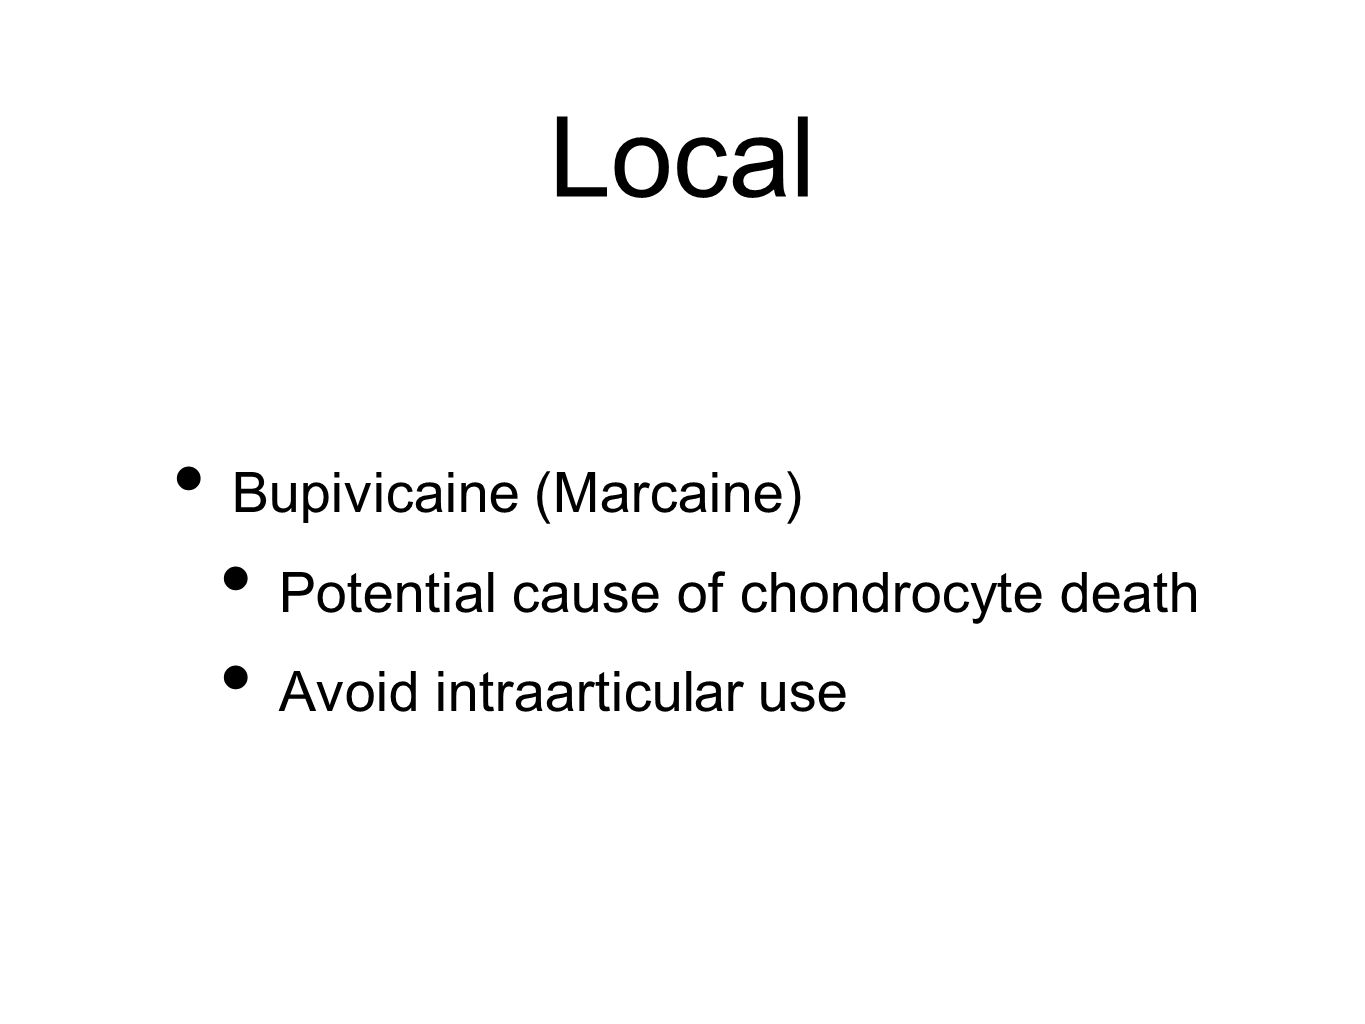 Local Bupivicaine (Marcaine) Potential cause of chondrocyte death Avoid intraarticular use